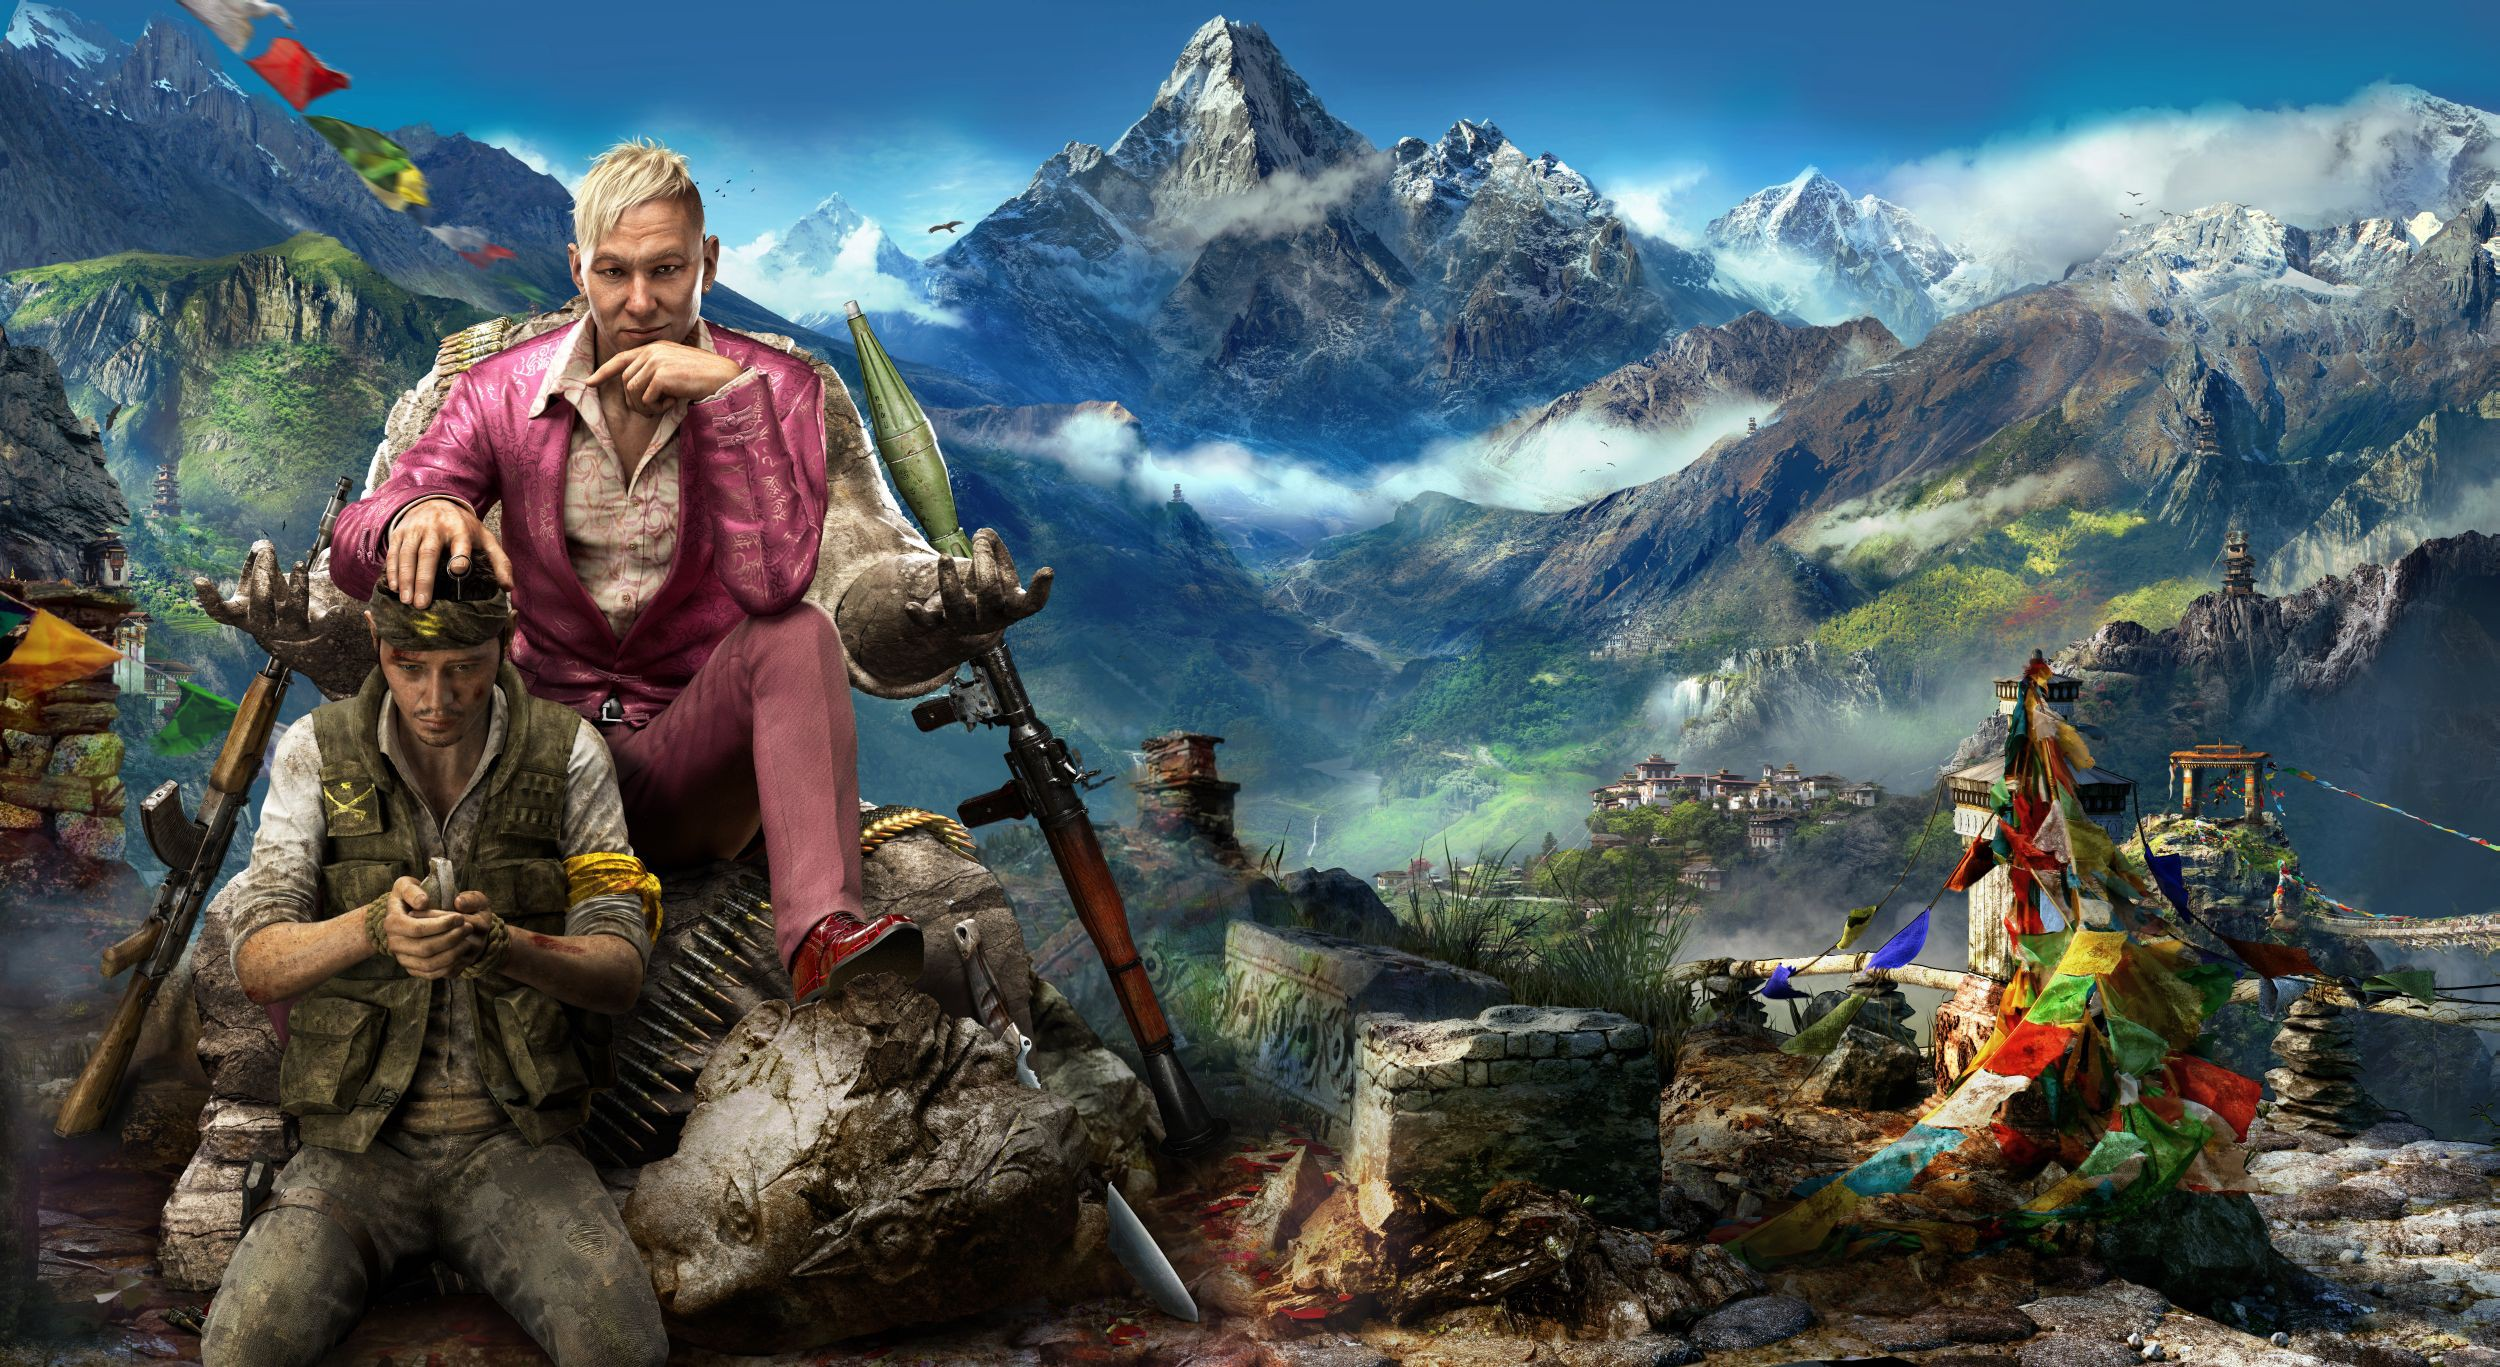 Far Cry 4 Wallpaper High Res #9038 Wallpaper